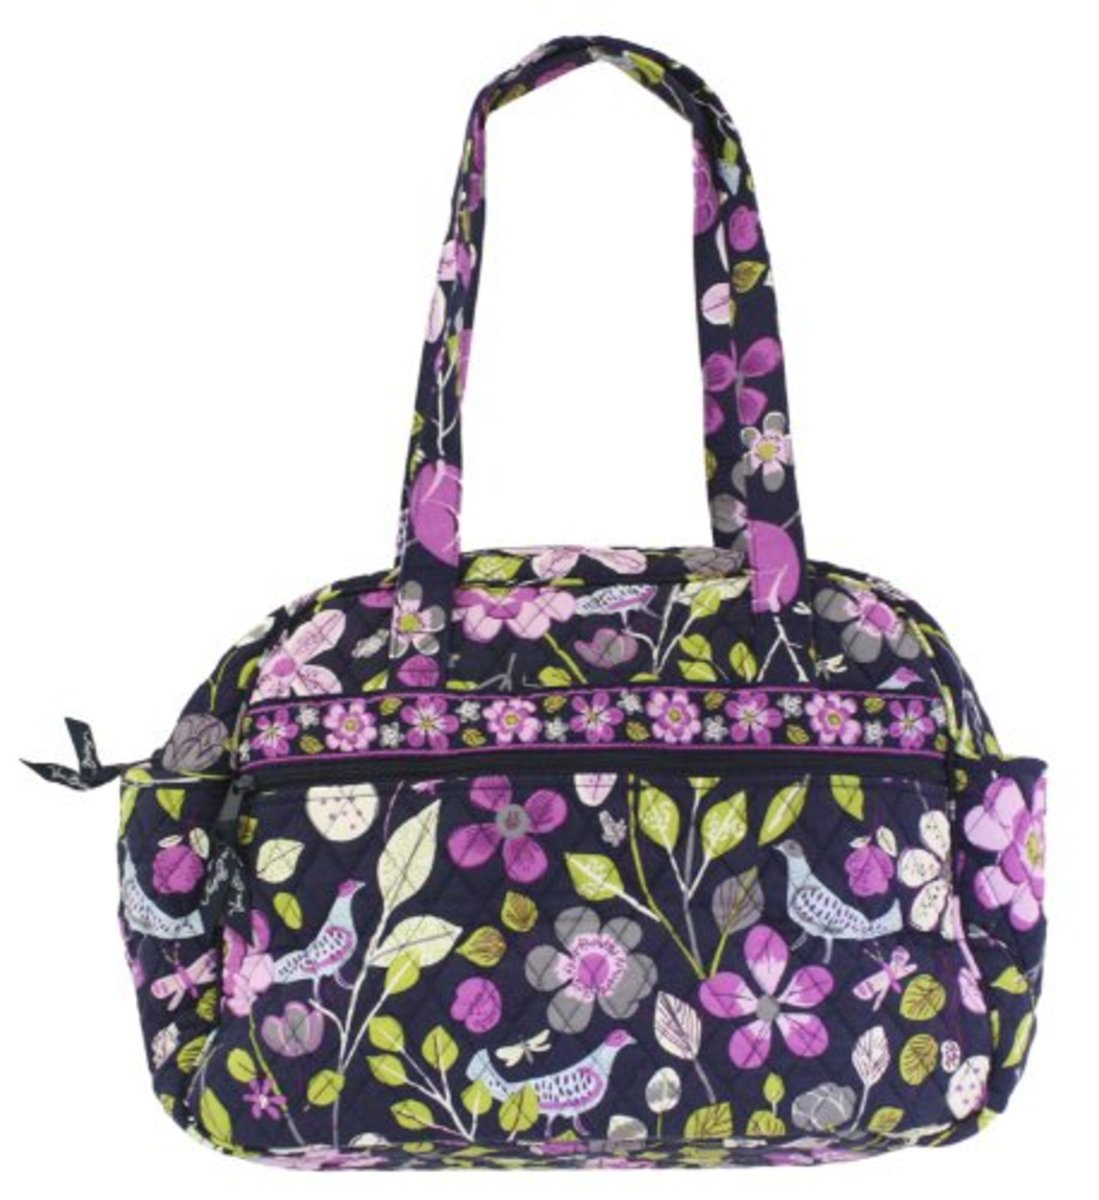 Vera Bradley Baby Bag in Floral Nightingale - Back- Back